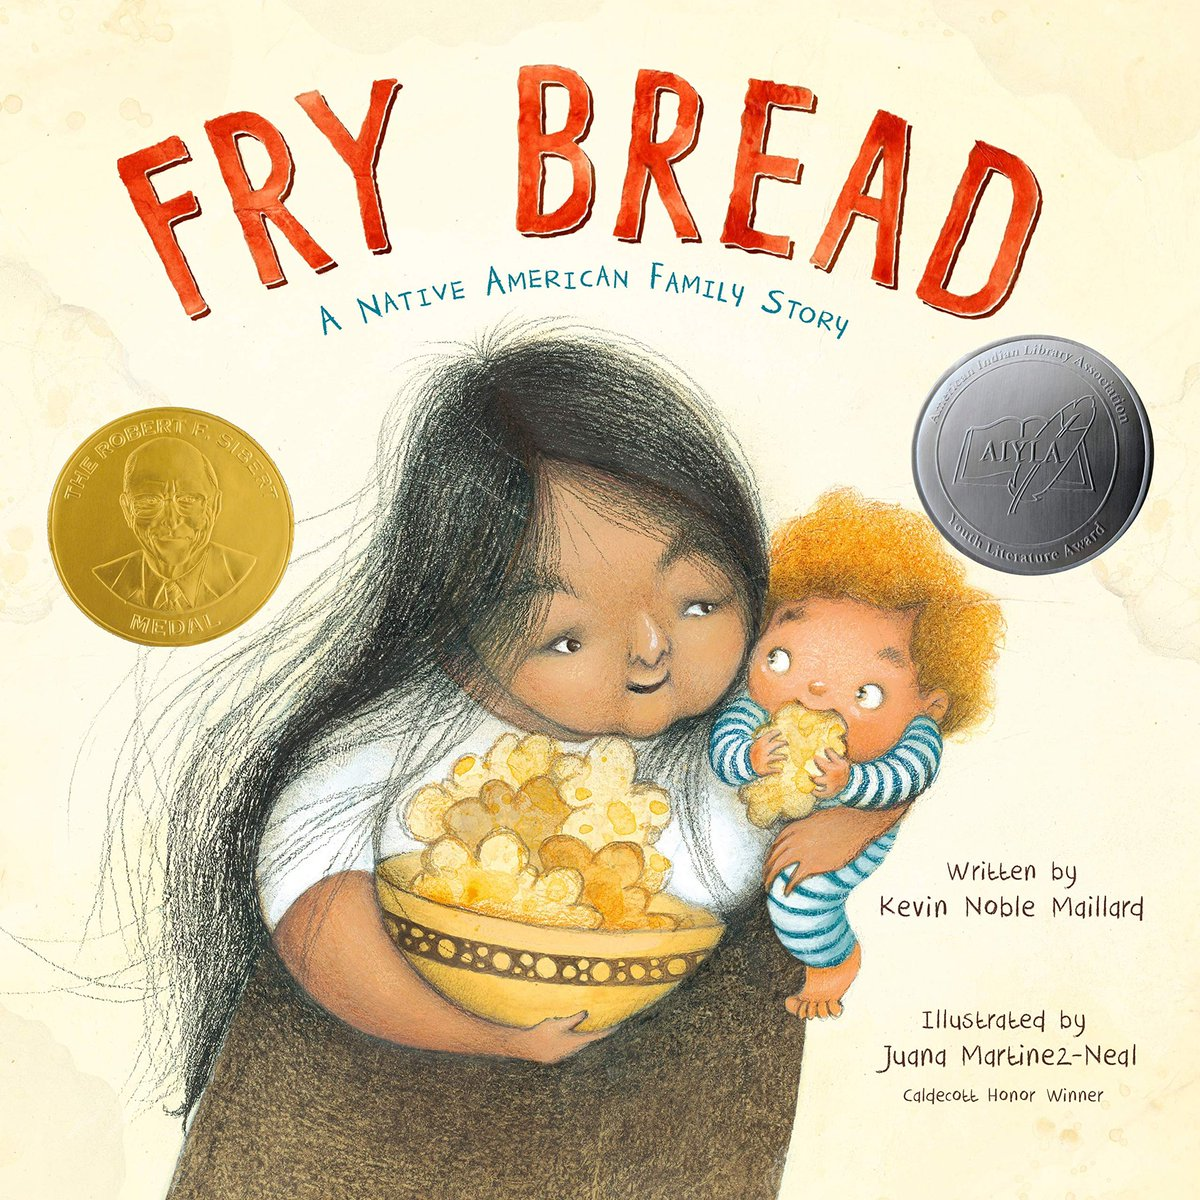 """inspired by """"Fry Bread"""", I made it. It came out delicious, although not as expertly round as the Native Americans can make it. Being an Asian India myself this book and even the cooking resonates with me so much!  #kidlit #writingcommmunity #authorlife #amreading #PictureBooks https://t.co/VaC39iuKlT"""